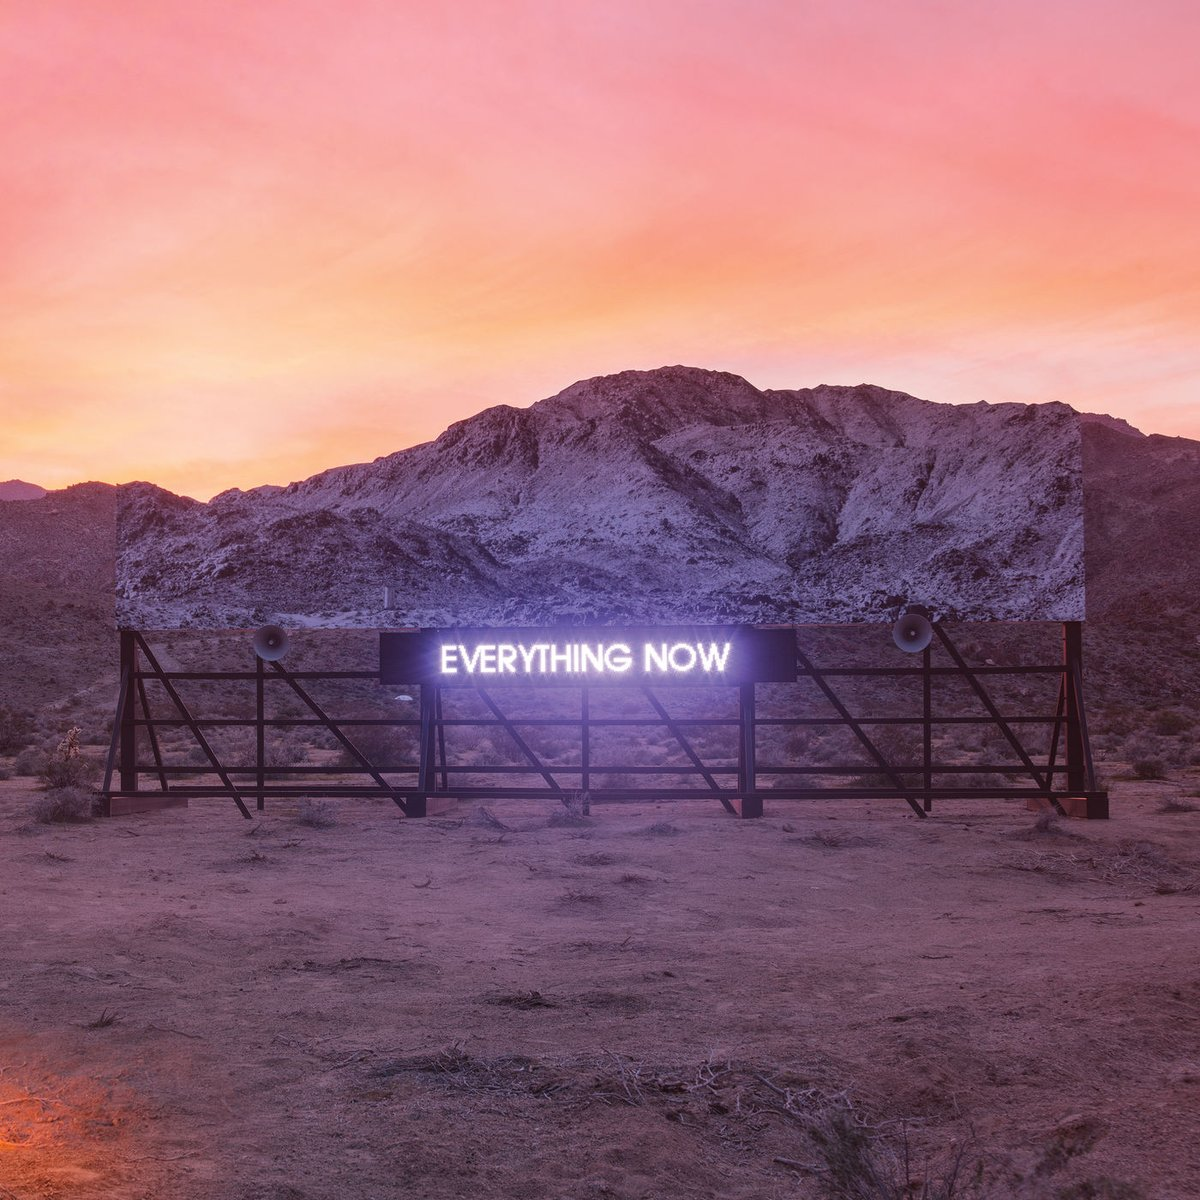 everything now Arcade Fire premiere new single Everything Now, co produced by Daft Punks Thomas Bangalter    listen